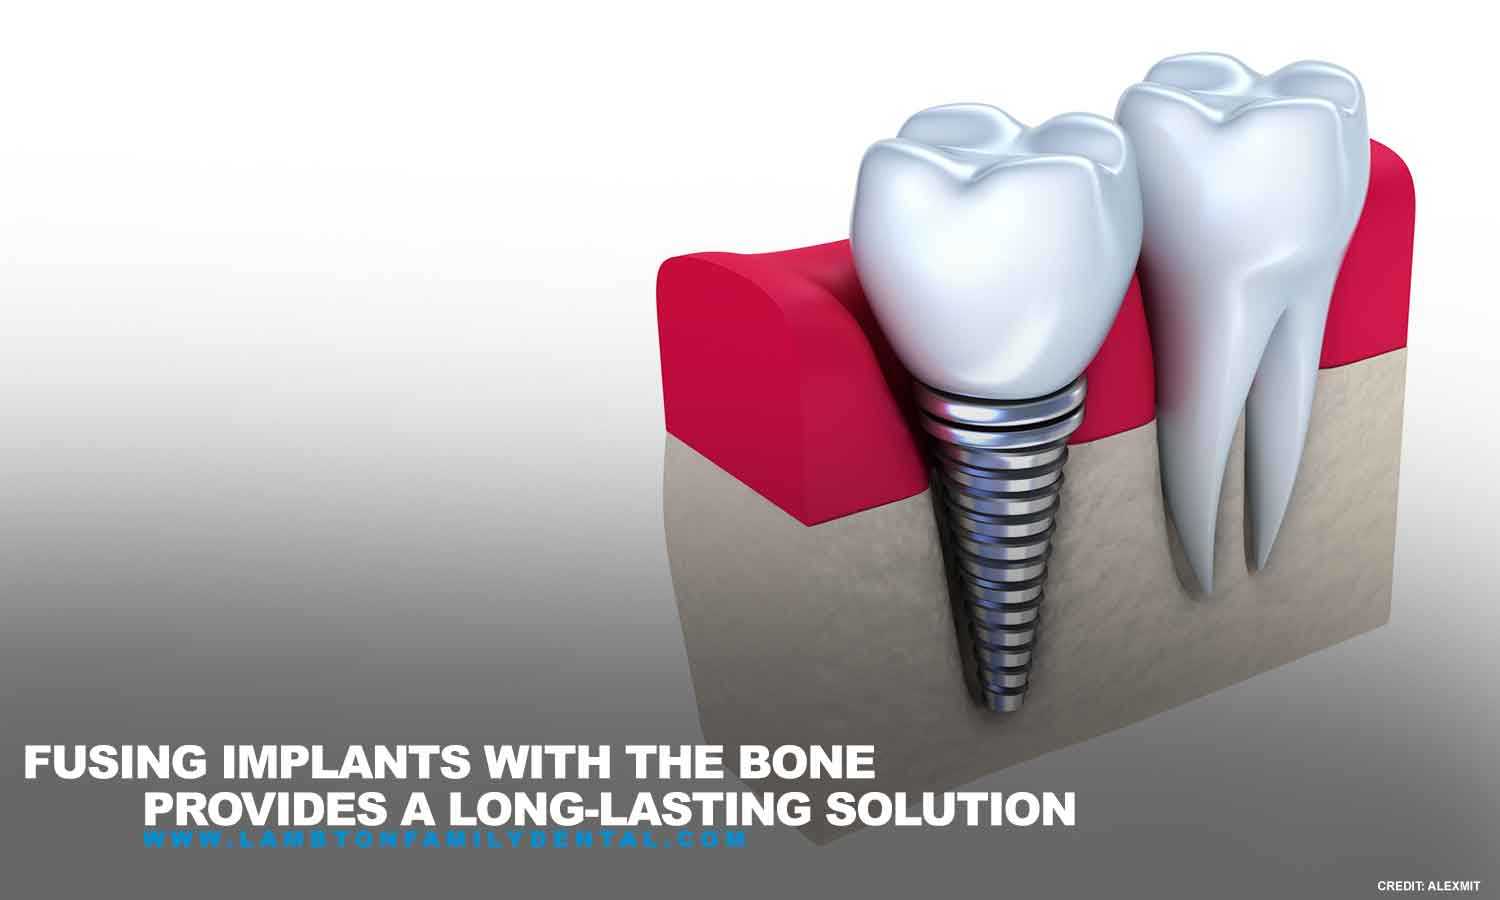 Fusing implants with the bone provides a long-lasting solution